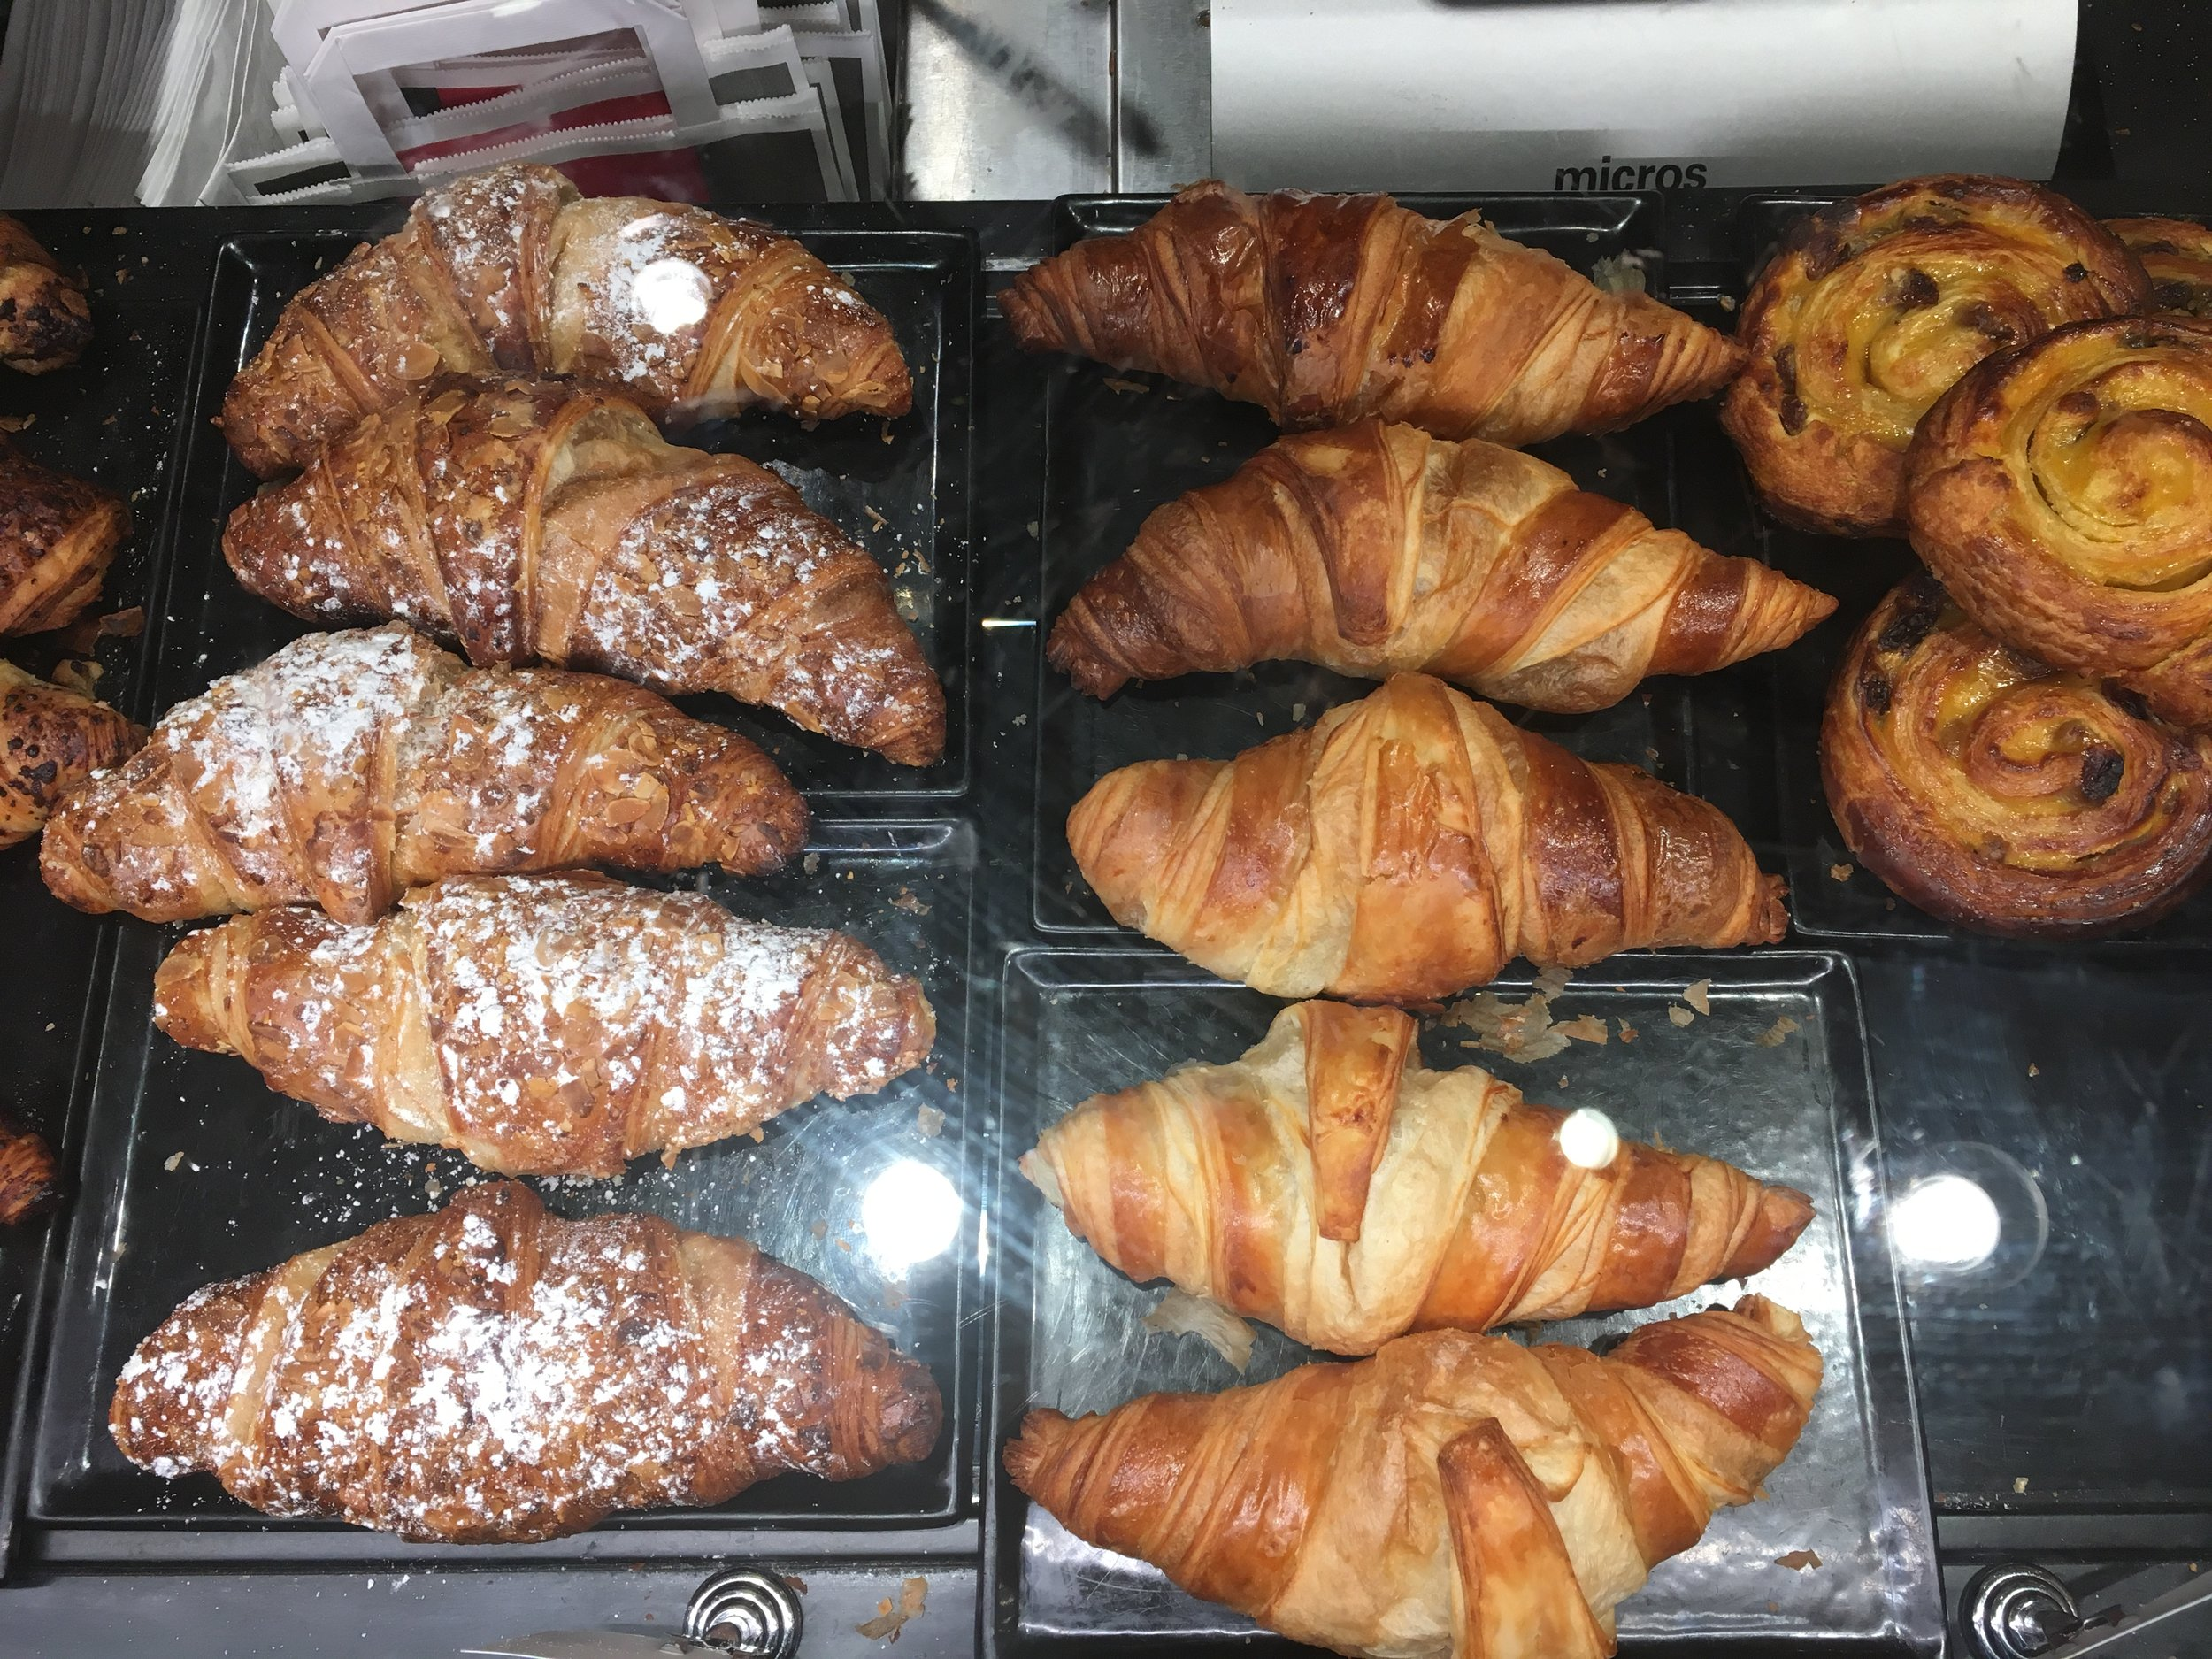 Croissants dusted with sugar and filled with Nutella. Hmmm.